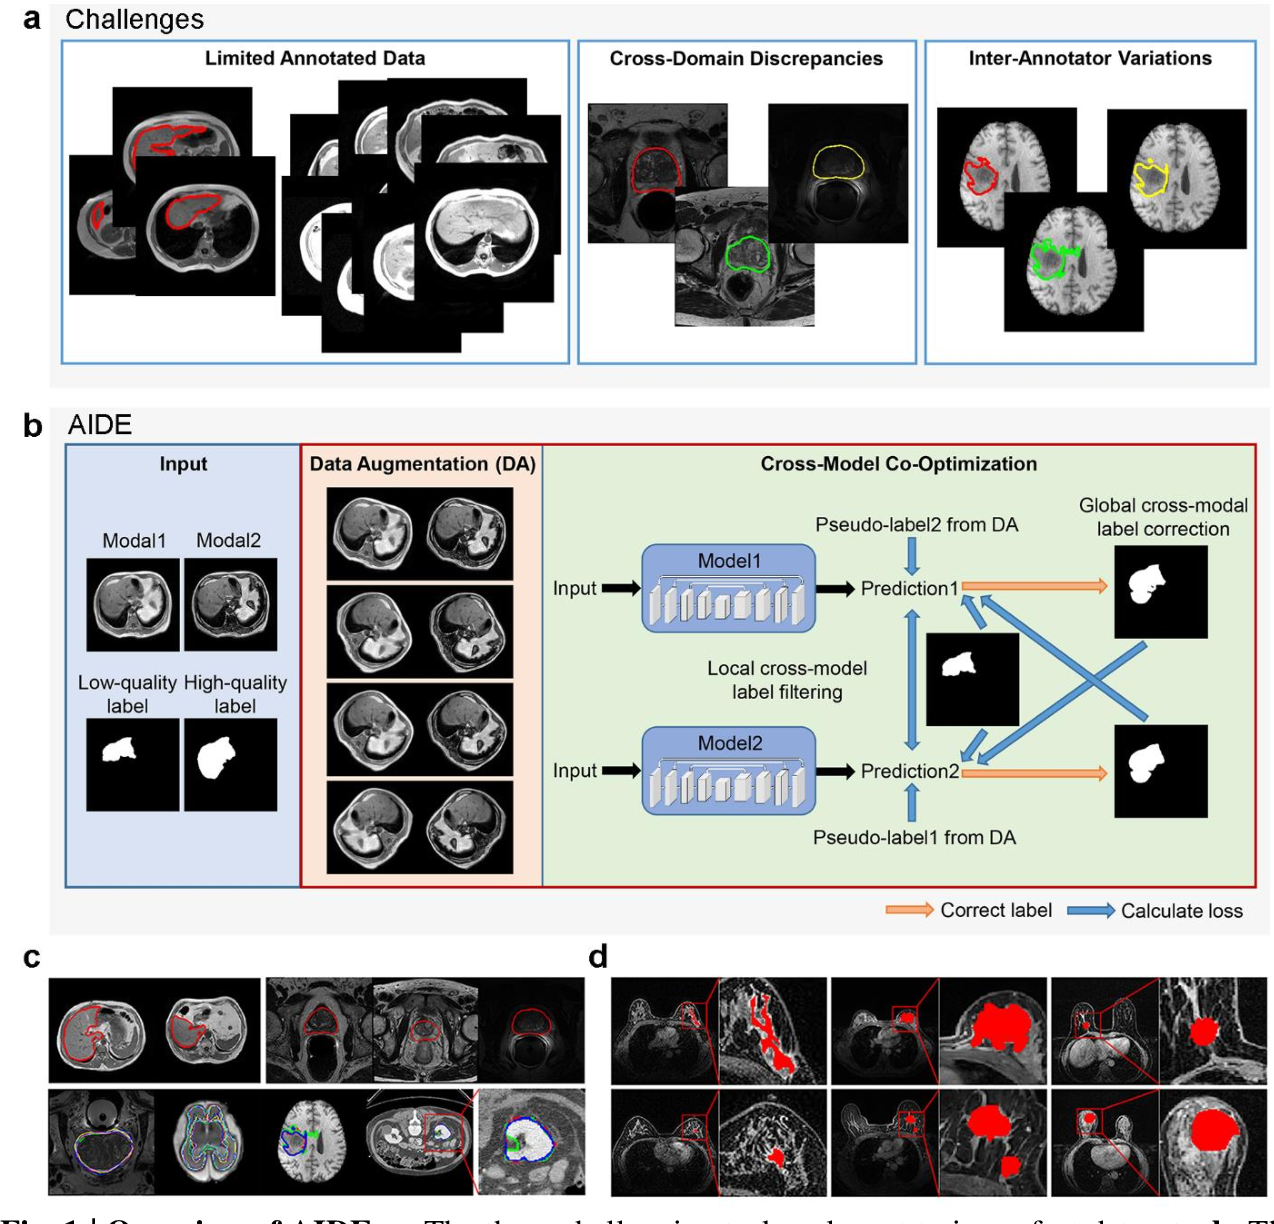 Figure 1 for AIDE: Annotation-efficient deep learning for automatic medical image segmentation